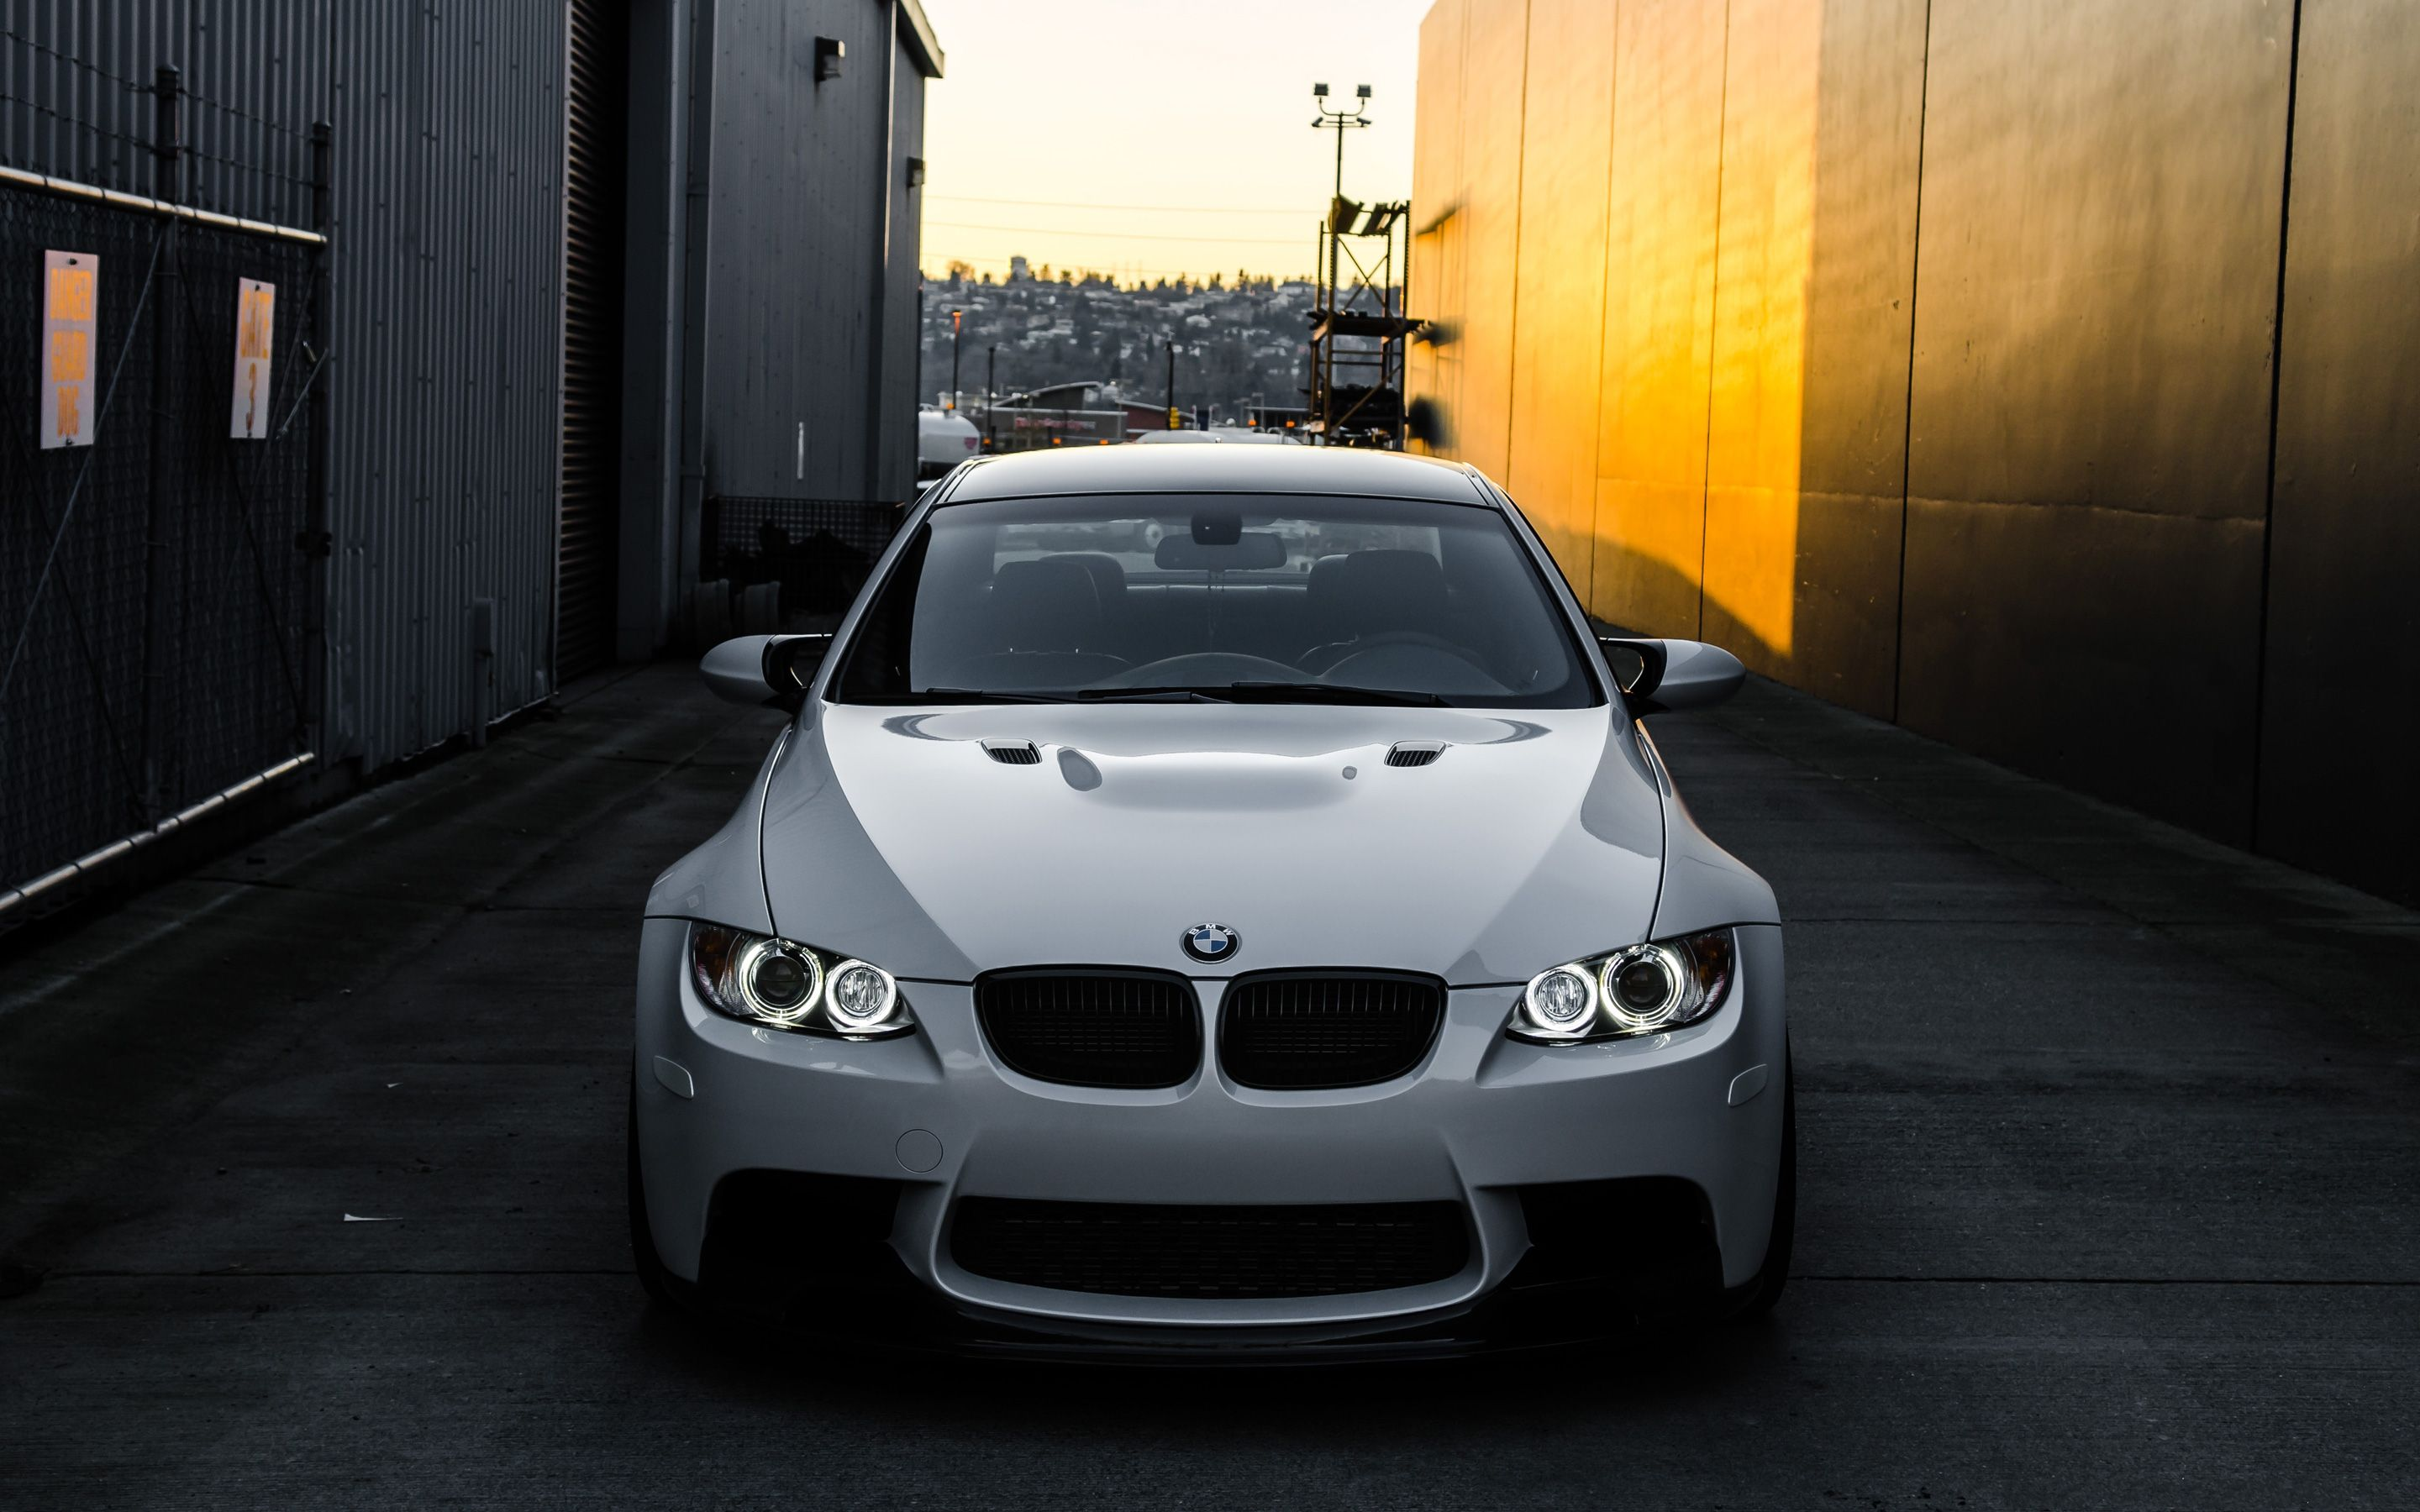 Blue Bmw M2 Car On City Street At Night Wallpapers And Images Sporty Black 2017 Wallpaper - Medium